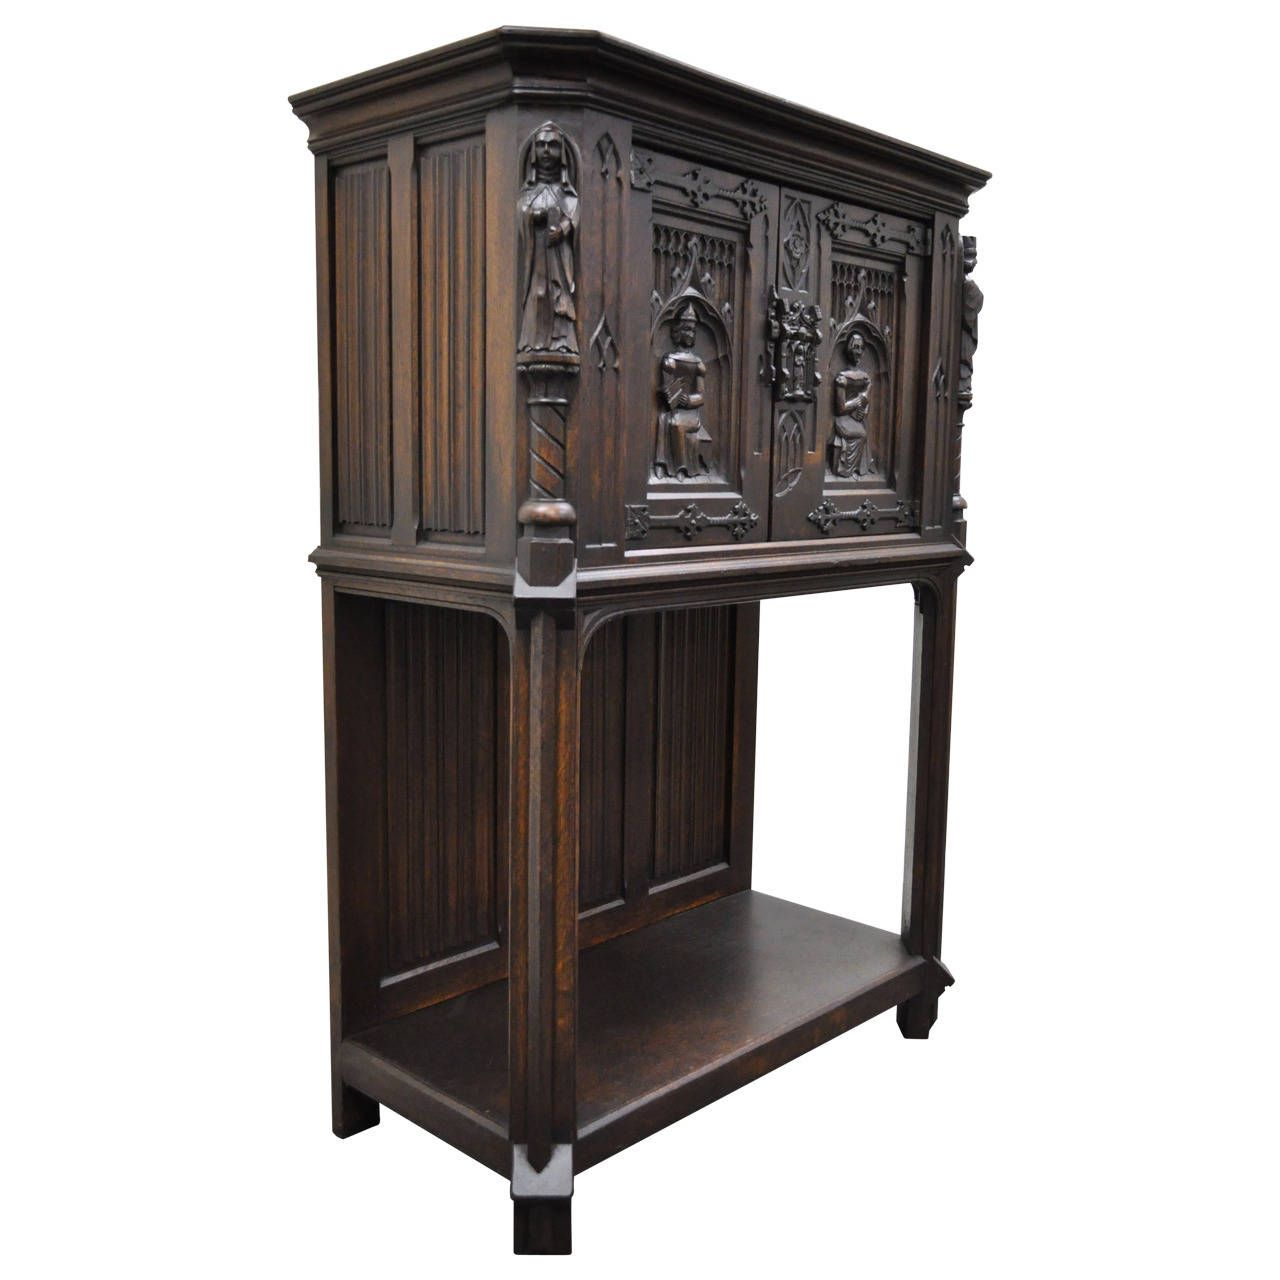 19th Century Belgian Carved Oak Dry Bar Cabinet Flemish Gothic Revival Figural Hand Carved Furniture Baroque Decor Cabinet